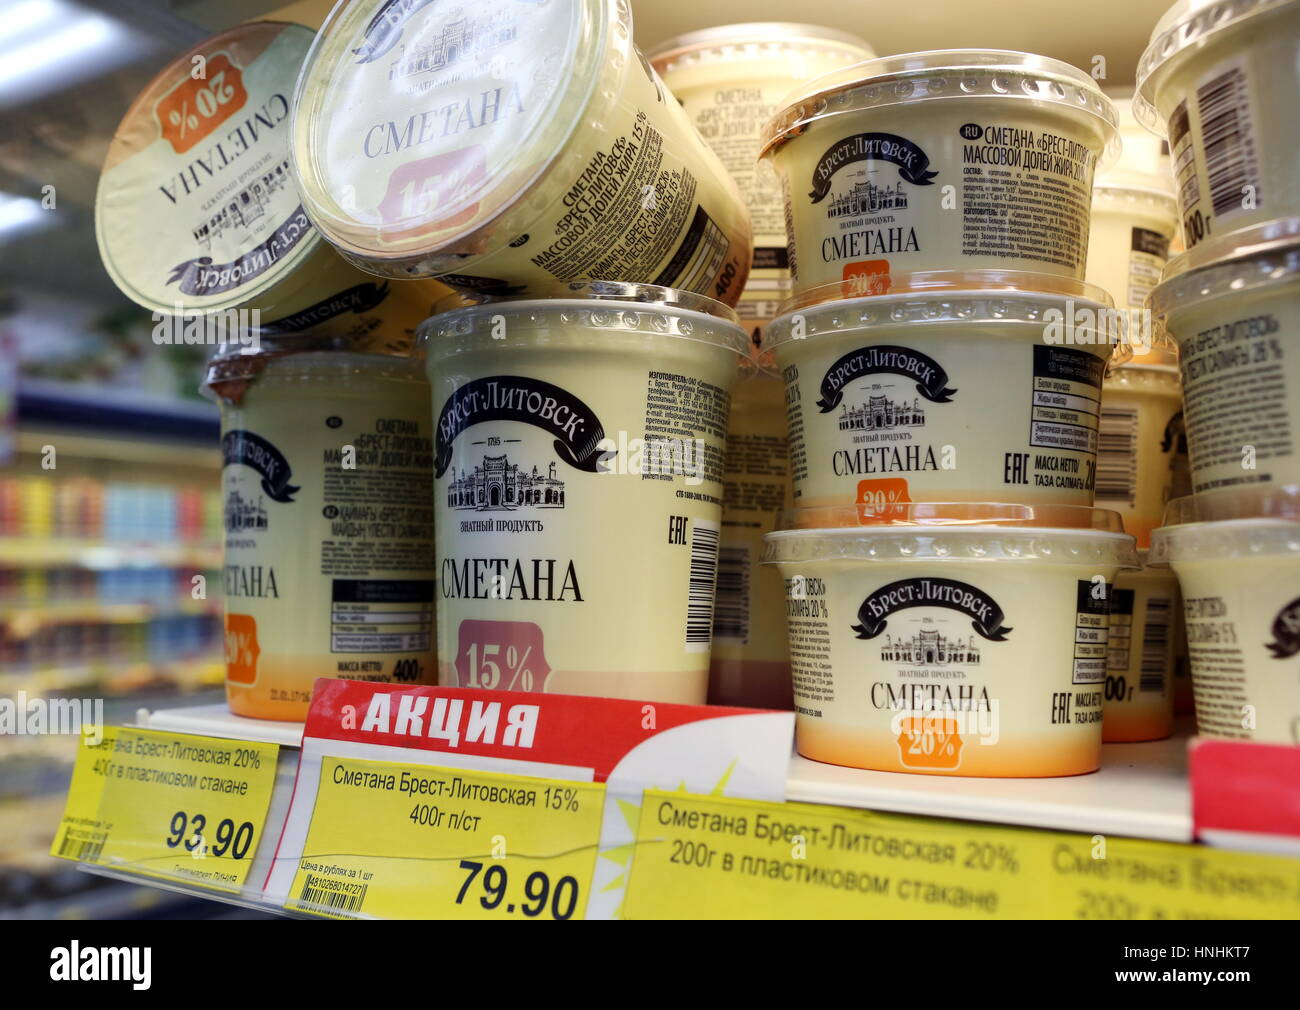 Belgorod, Russia. 10th Feb, 2017. Brest-Litovsk sour cream packages for sale at a Lenta hypermarket. Credit: Anton - Stock Image